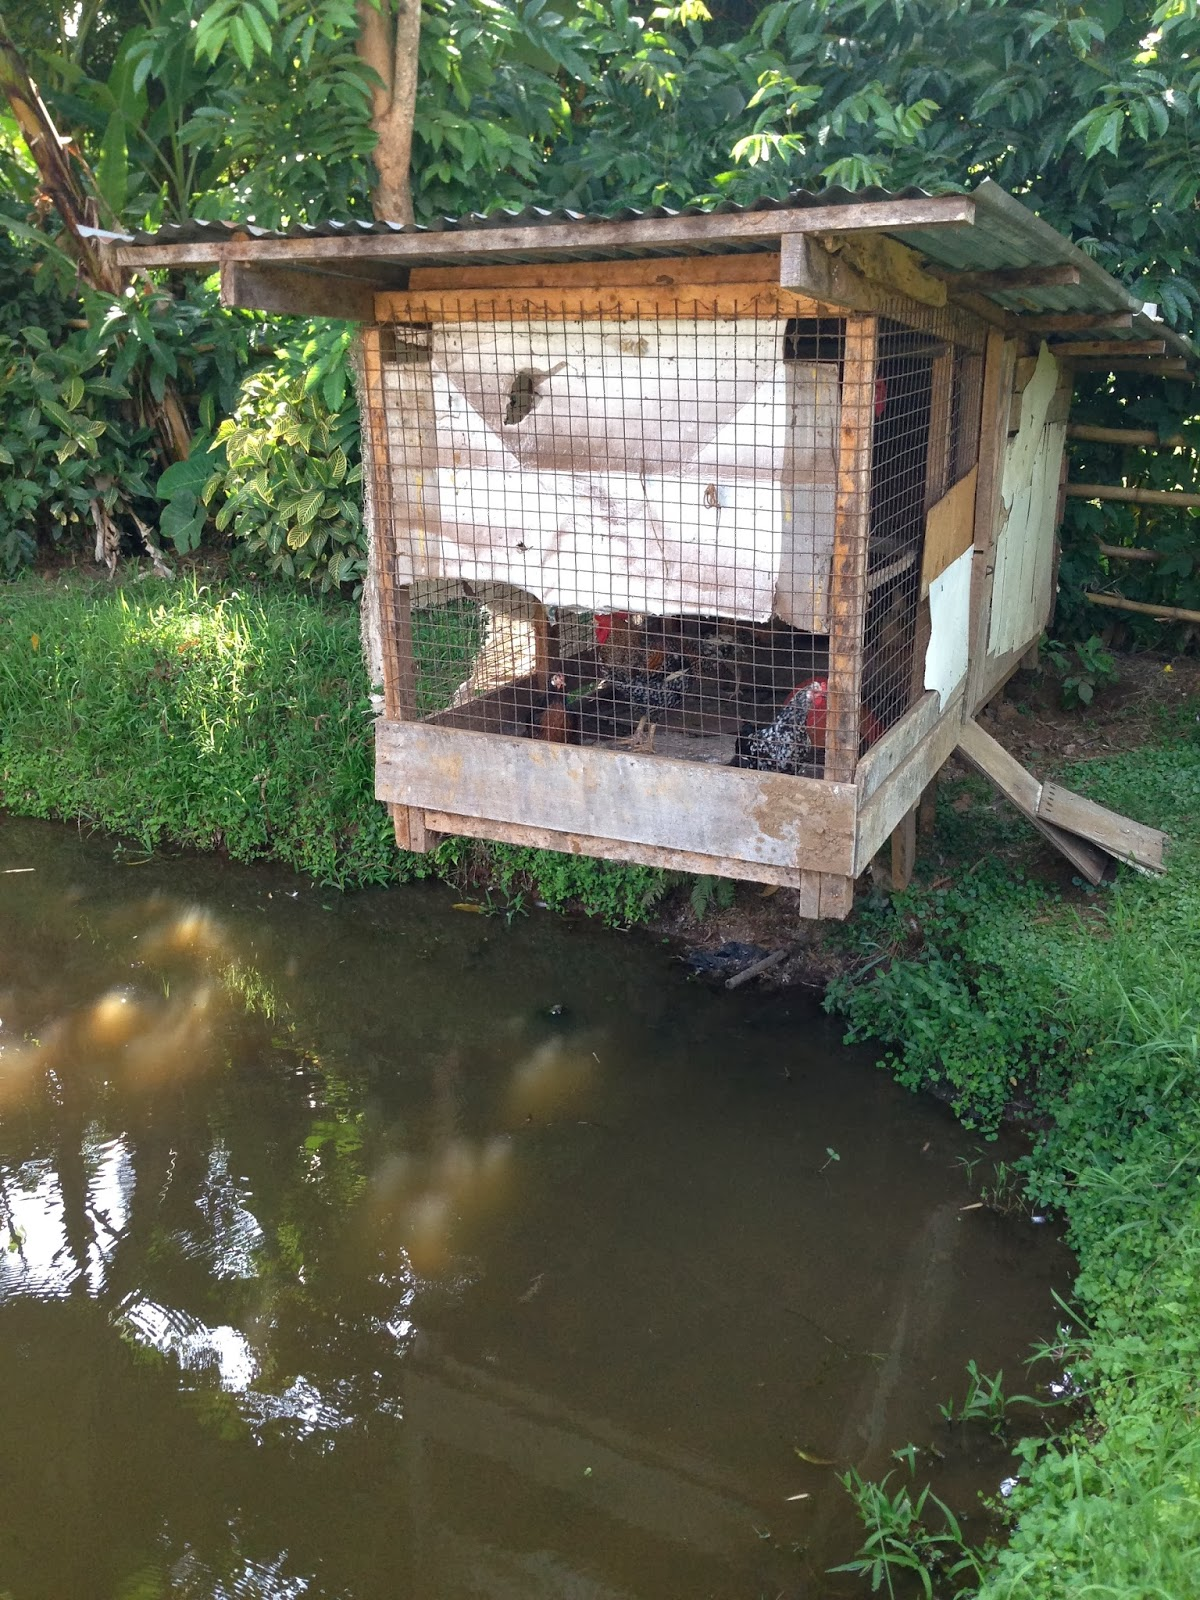 Chicken Coops That Work: 5 Brilliant Ways - Abundant ...